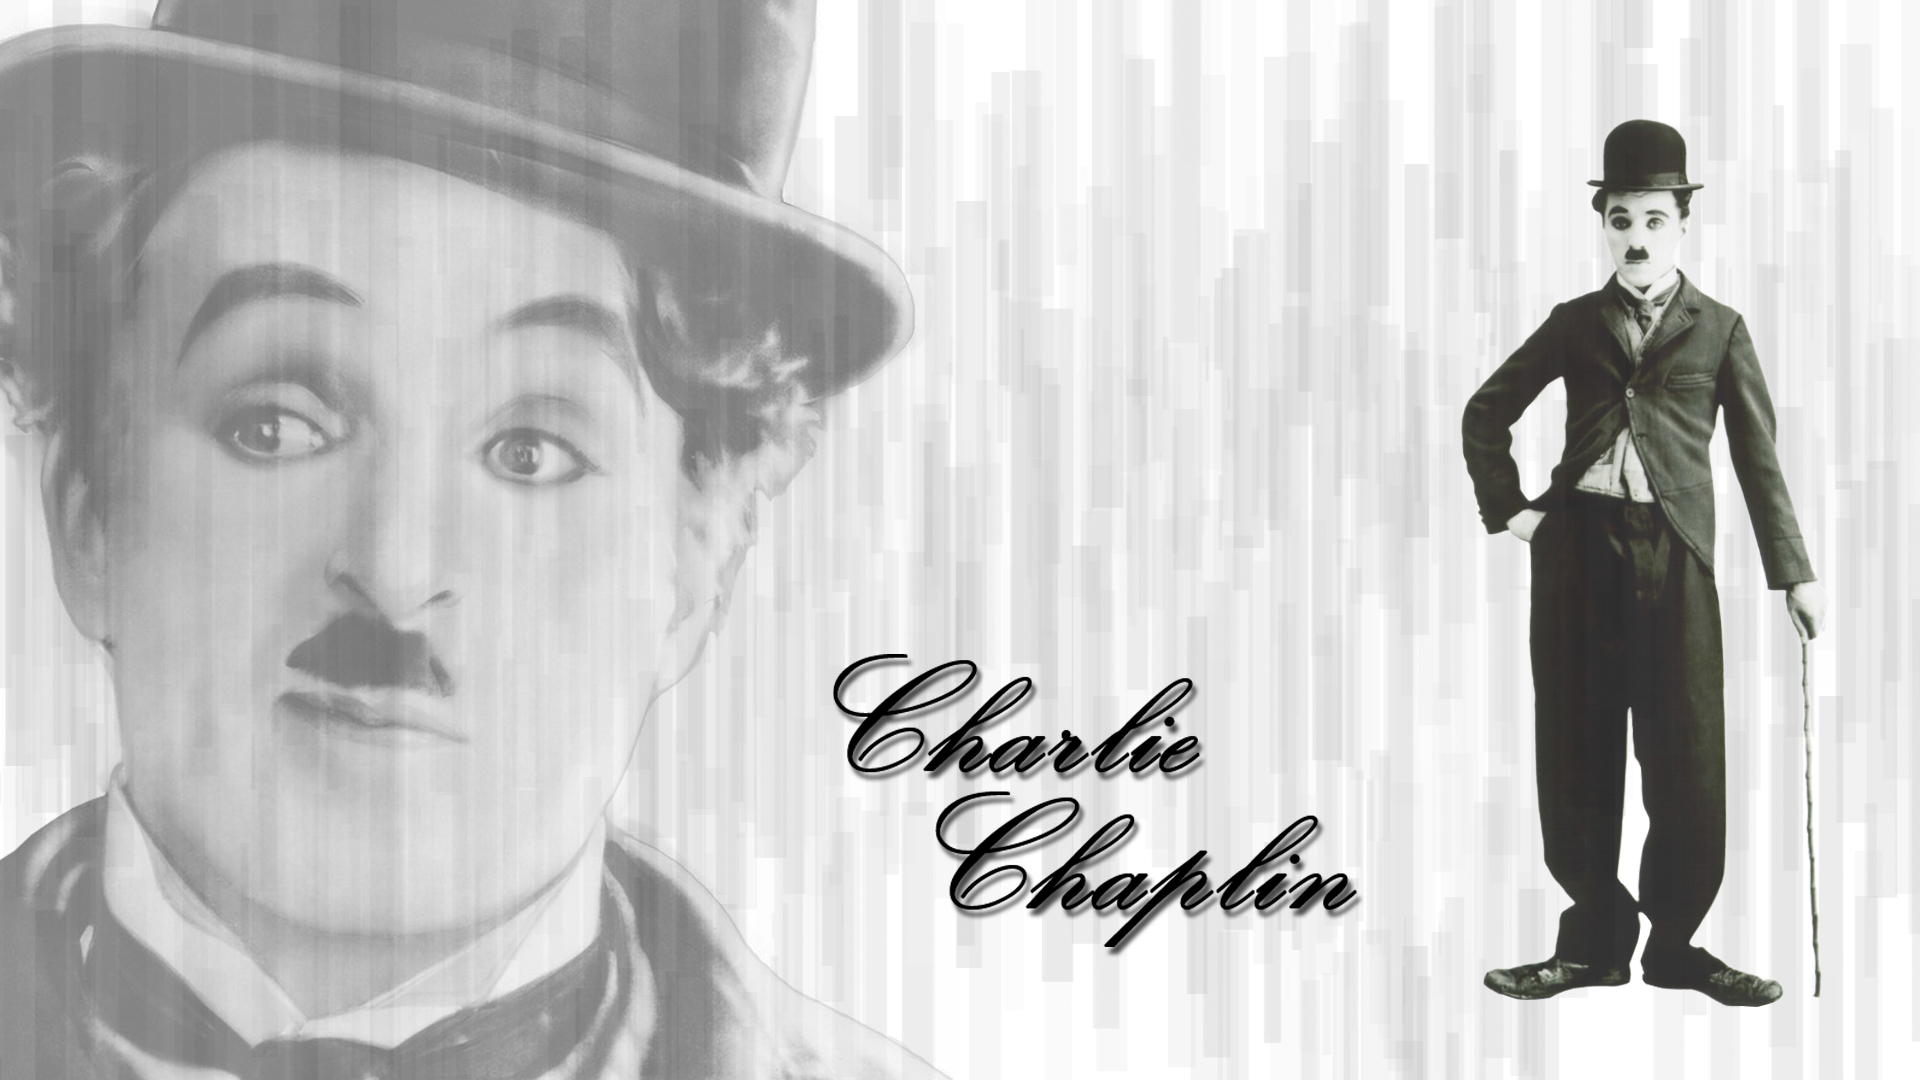 Charles Chaplin Pictures